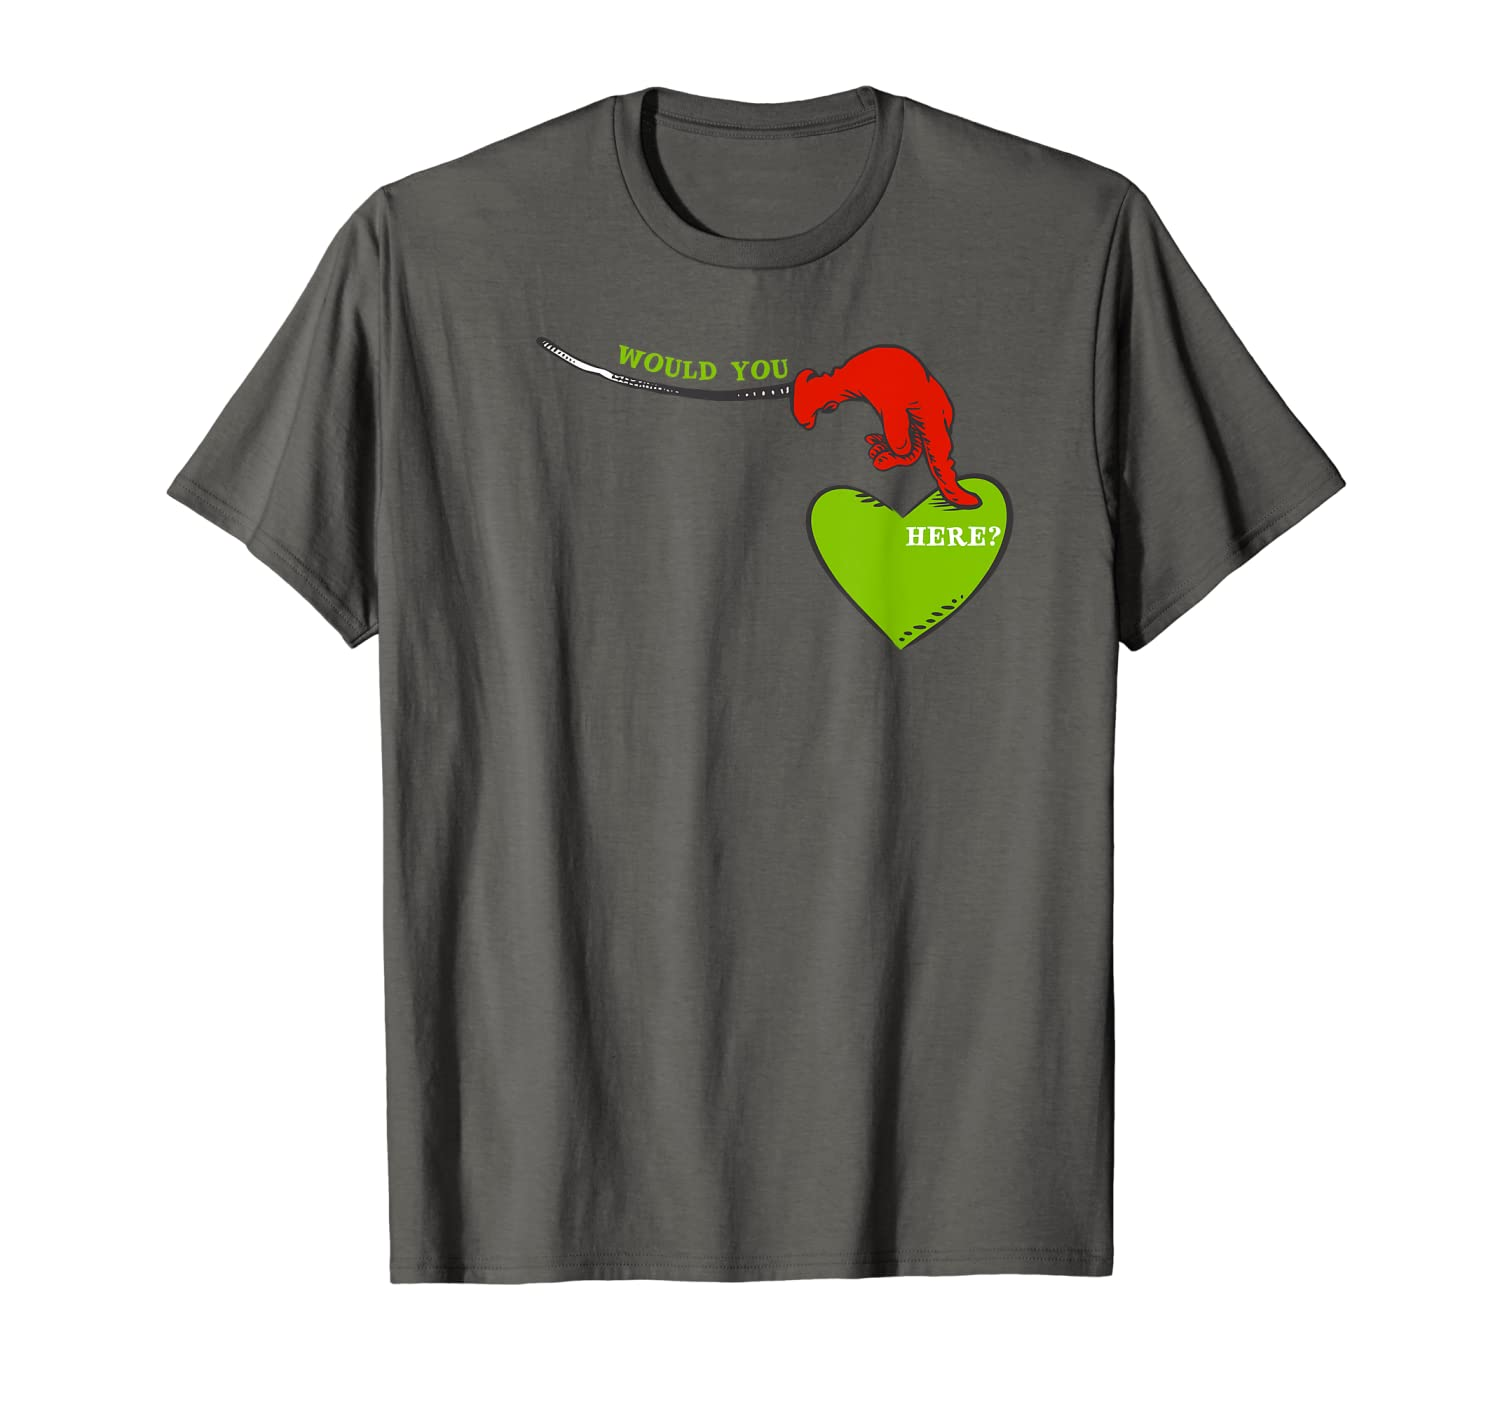 """Dr. Seuss Green Eggs and Ham """"Would You Here?"""" T-Shirt"""